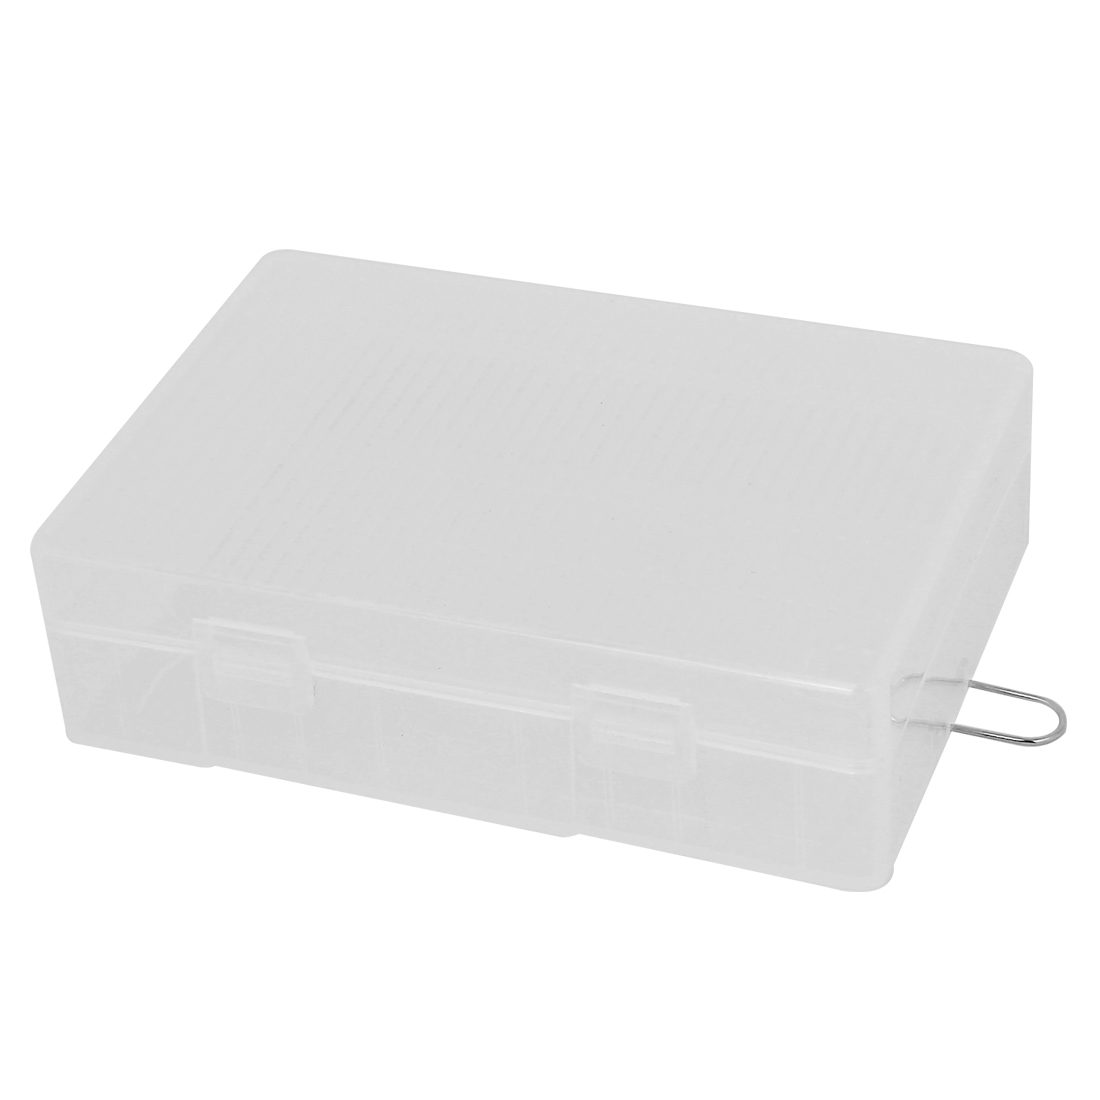 Clear Plastic Storage Box Case Holder for 4 x AA Battery Batteries